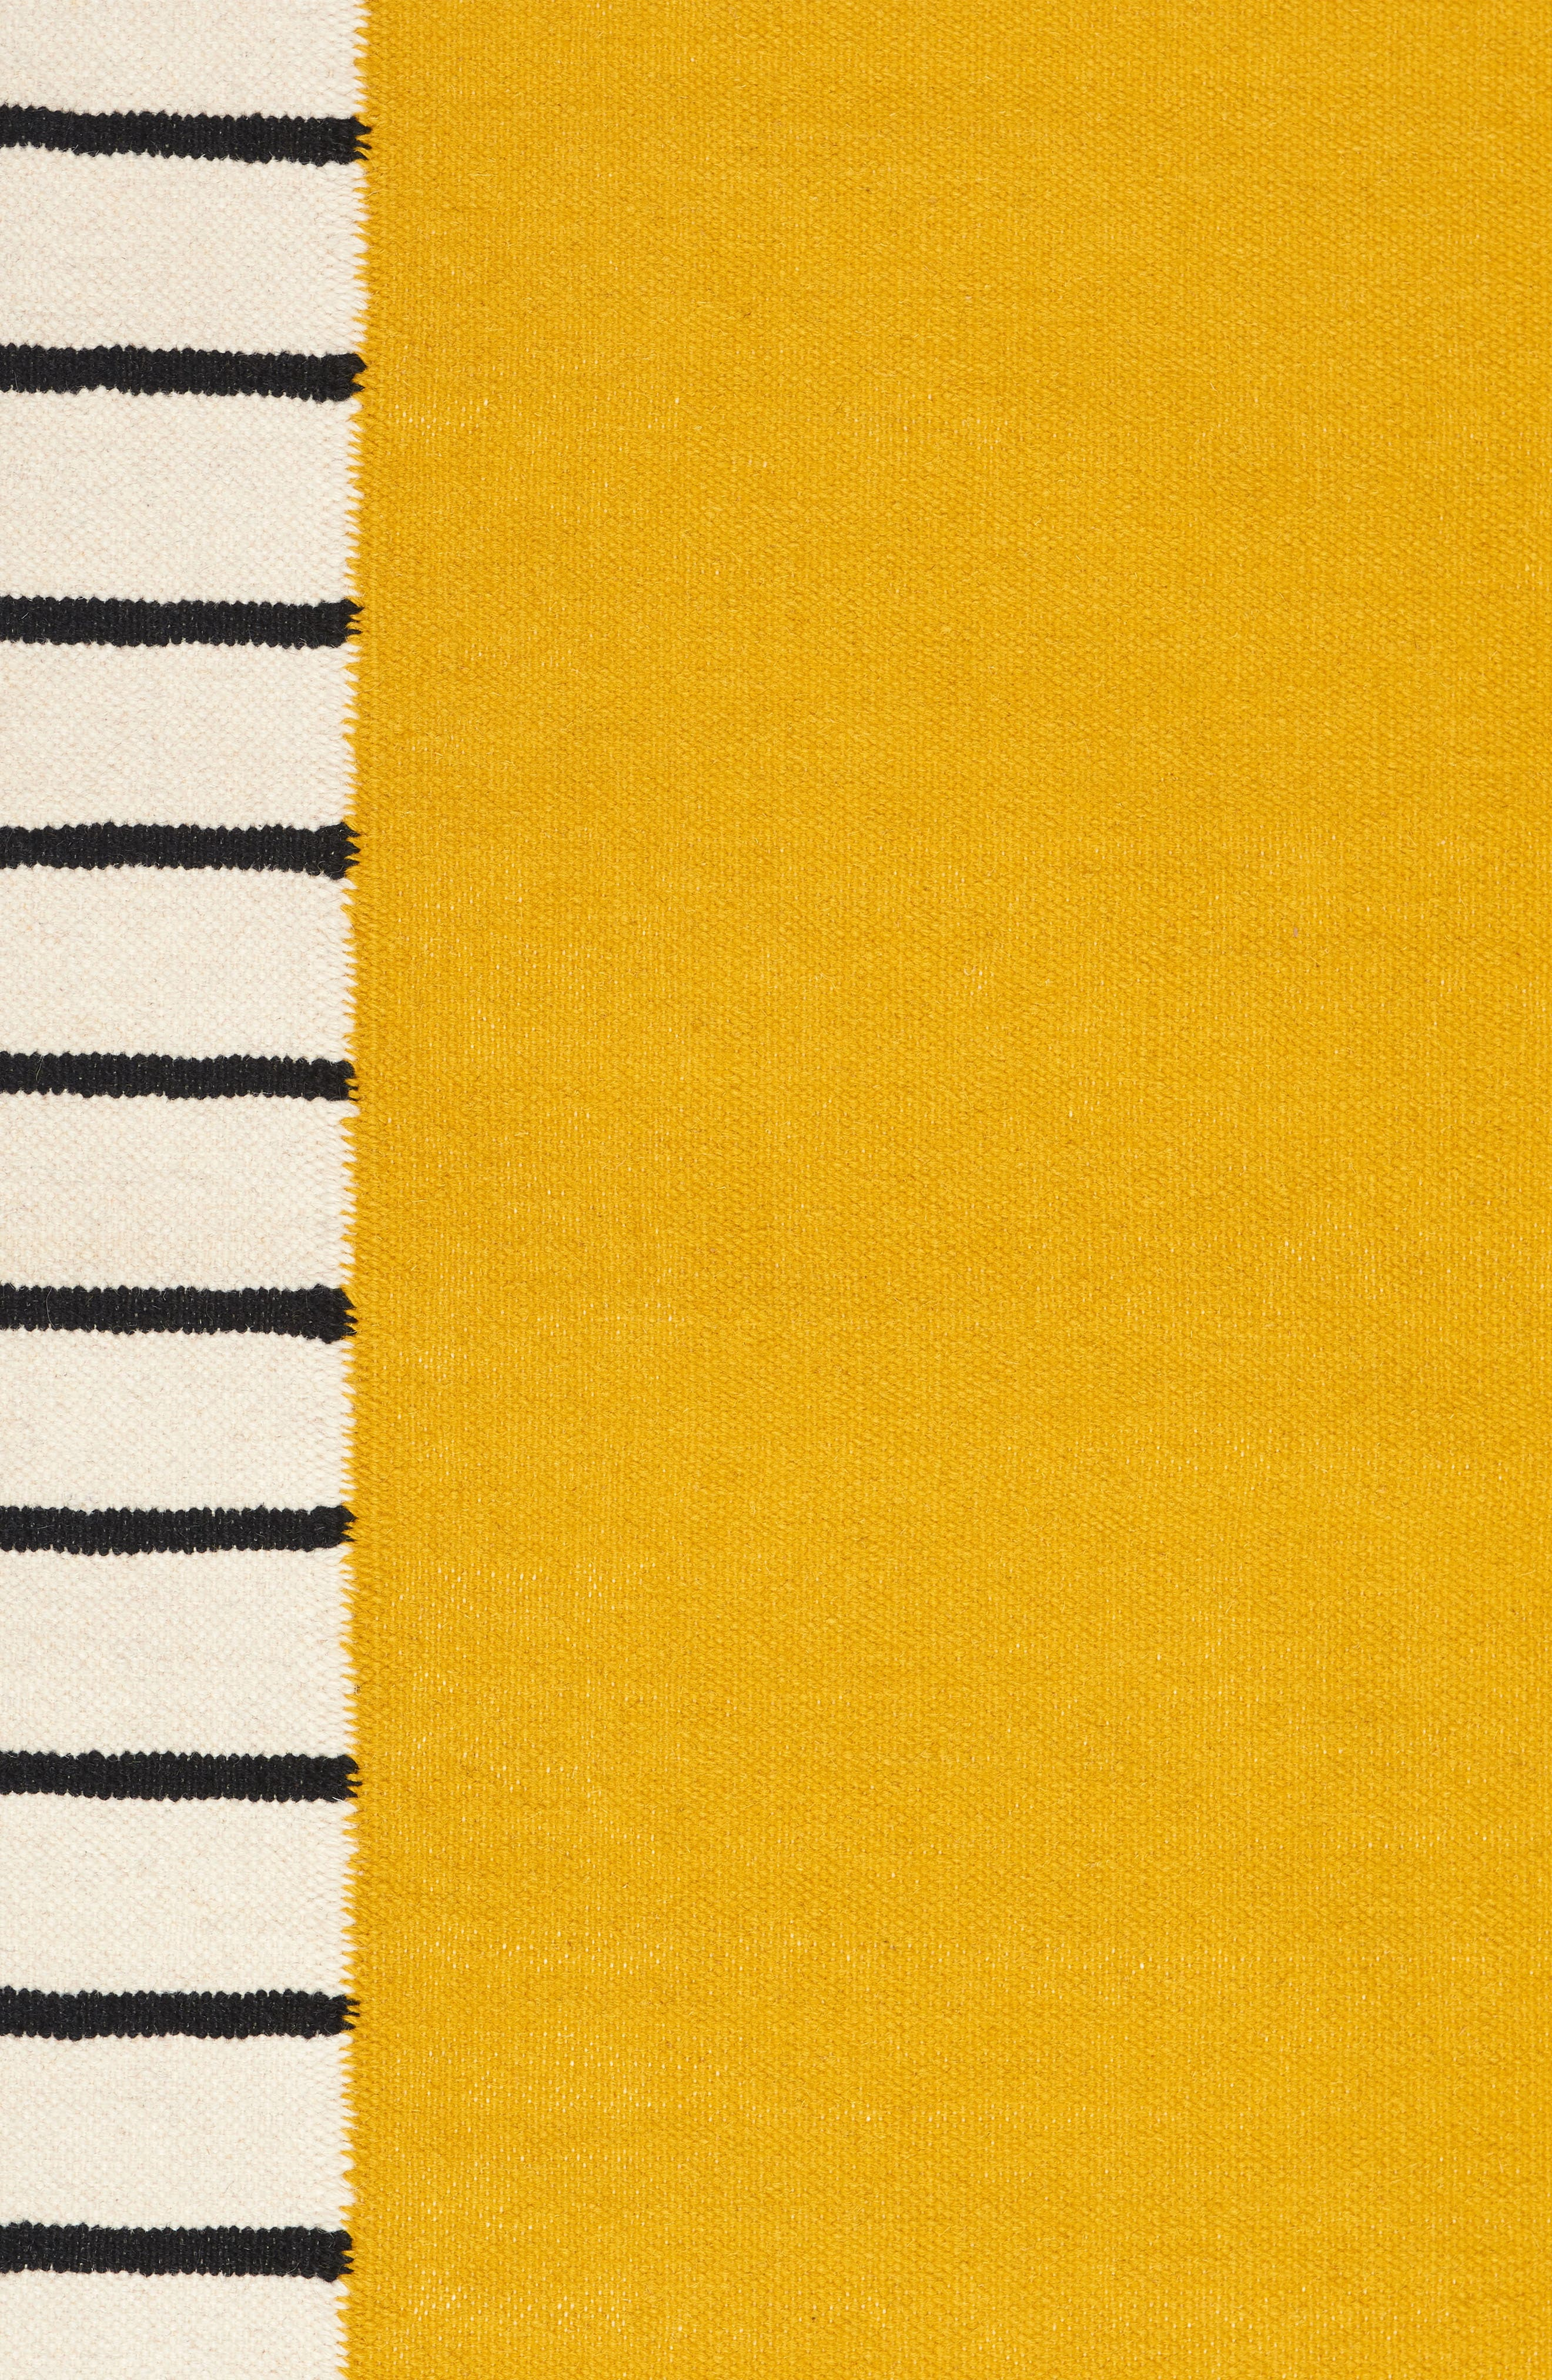 Suzanne Flat Weave Rug,                             Alternate thumbnail 3, color,                             YELLOW